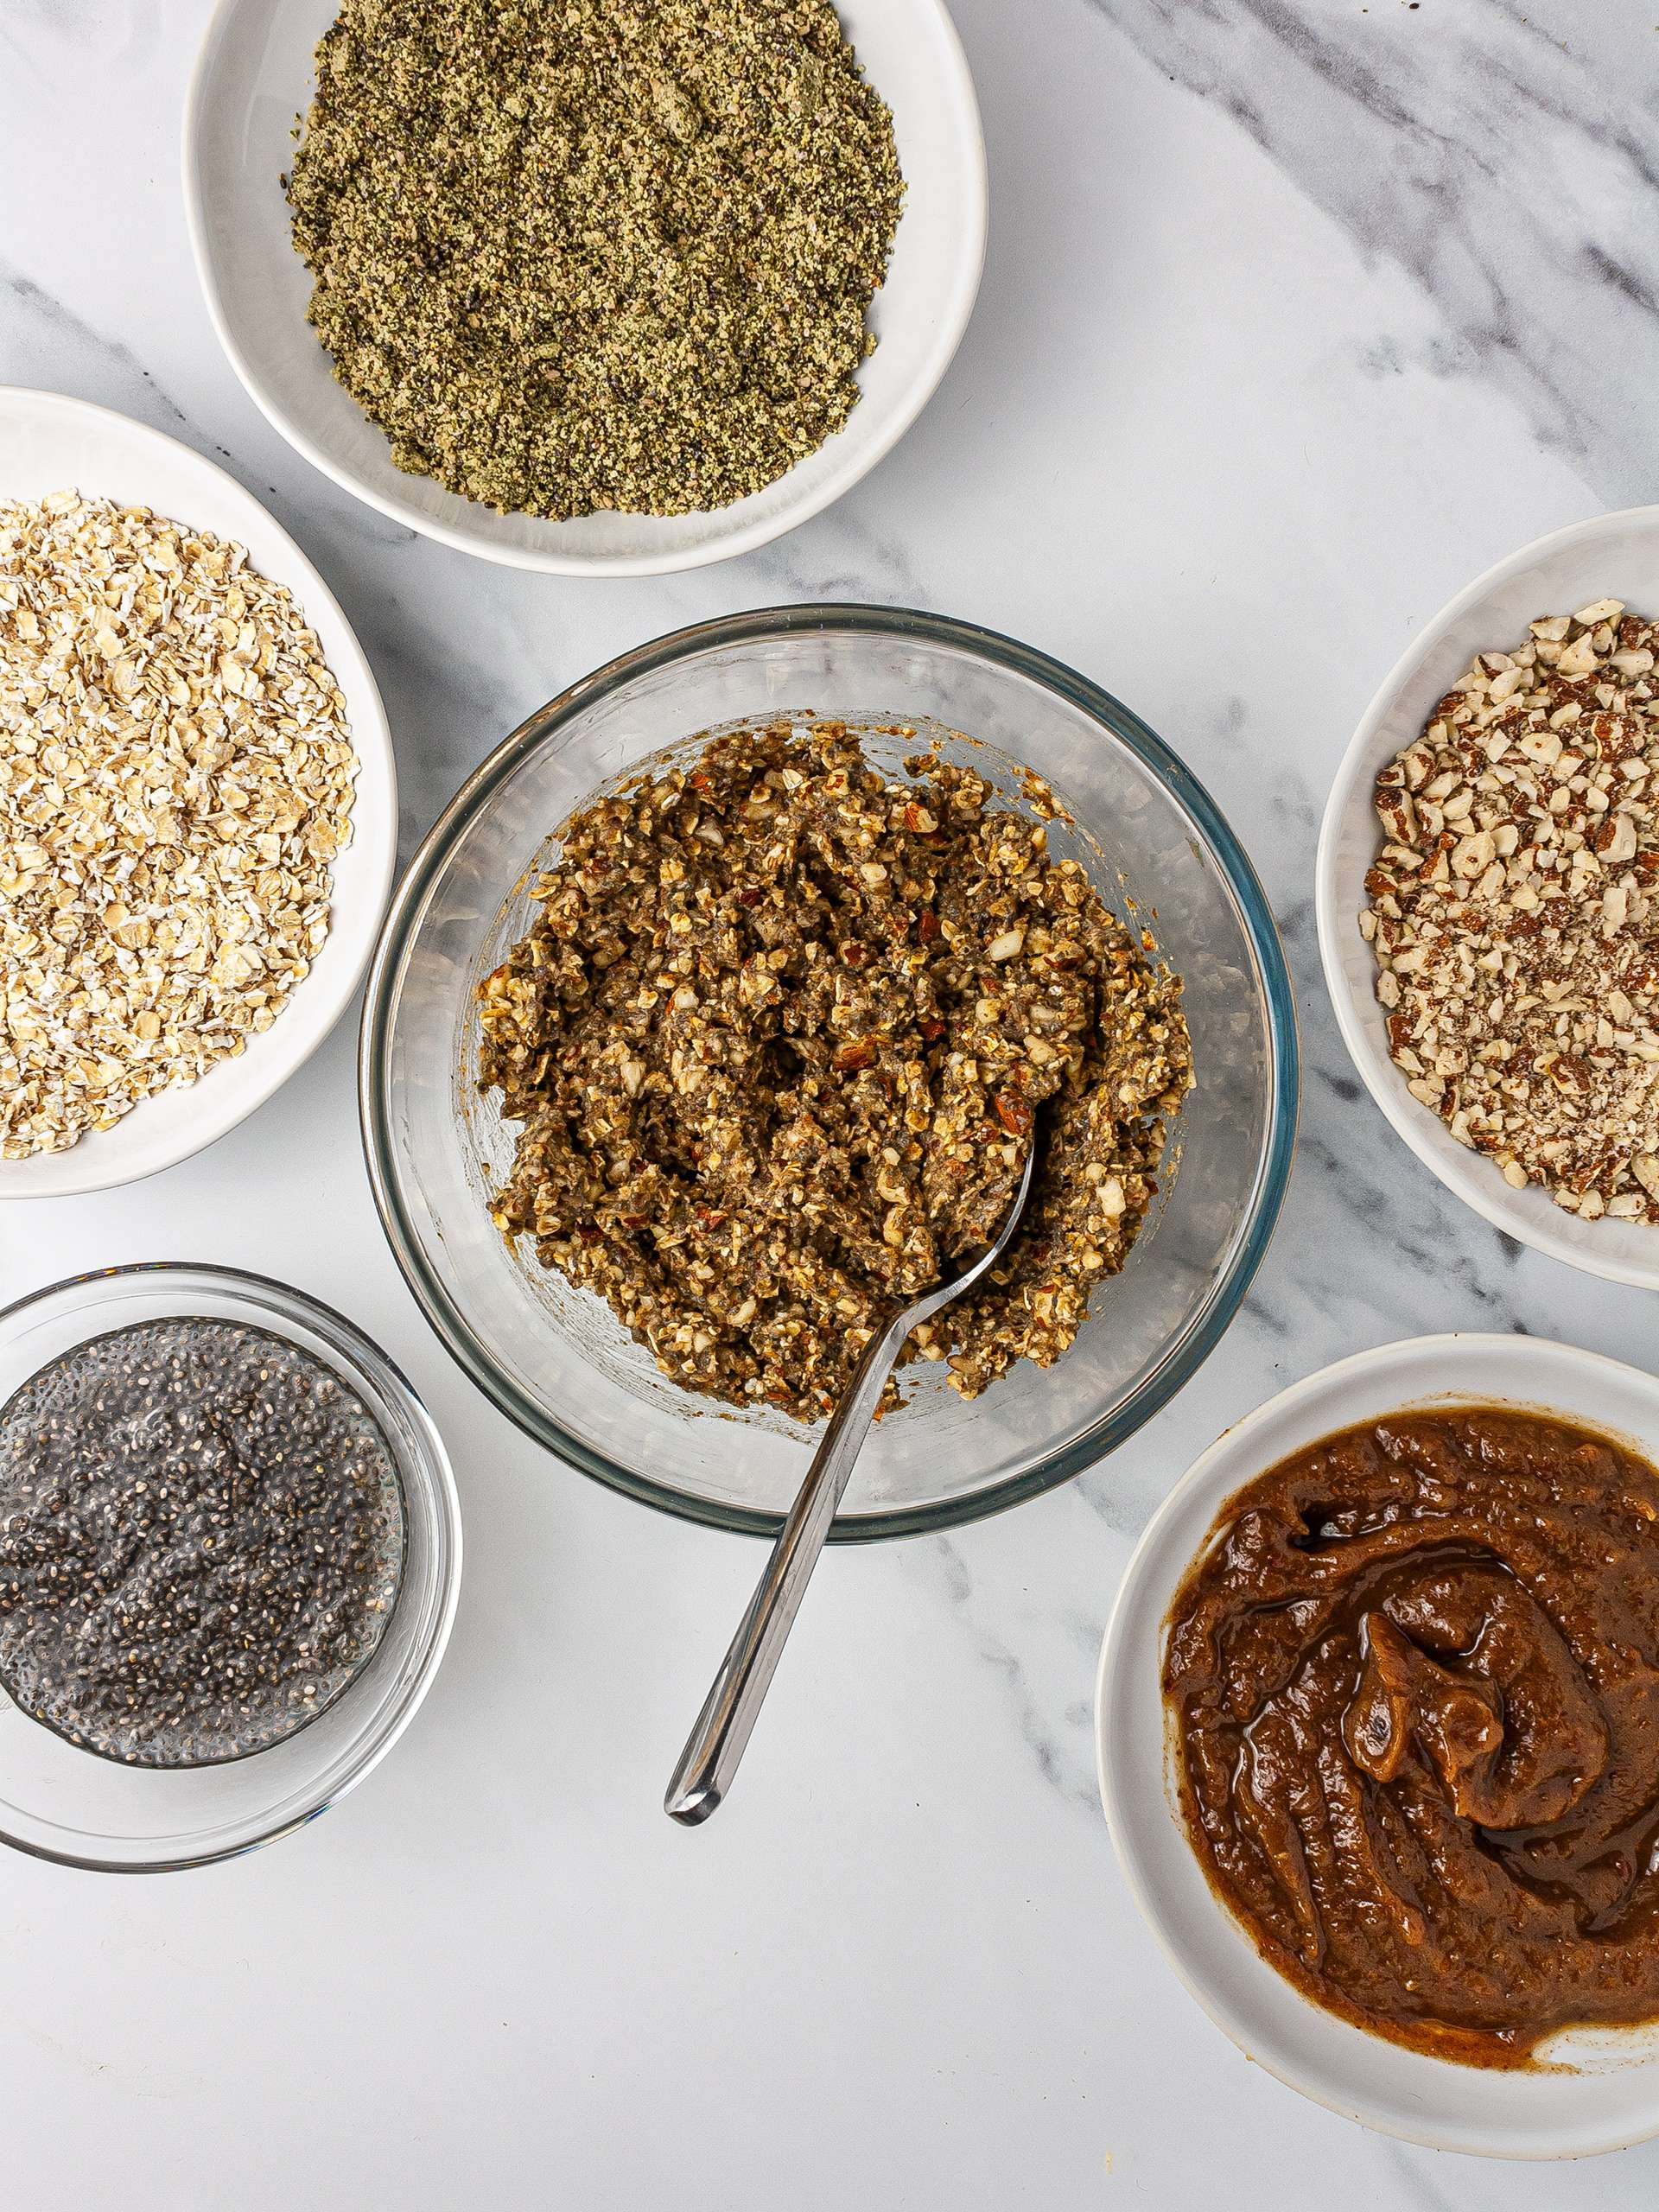 Protein energy balls ingredients including oats, almonds, chia seeds, pumpkin seeds, hemp seeds, and dates